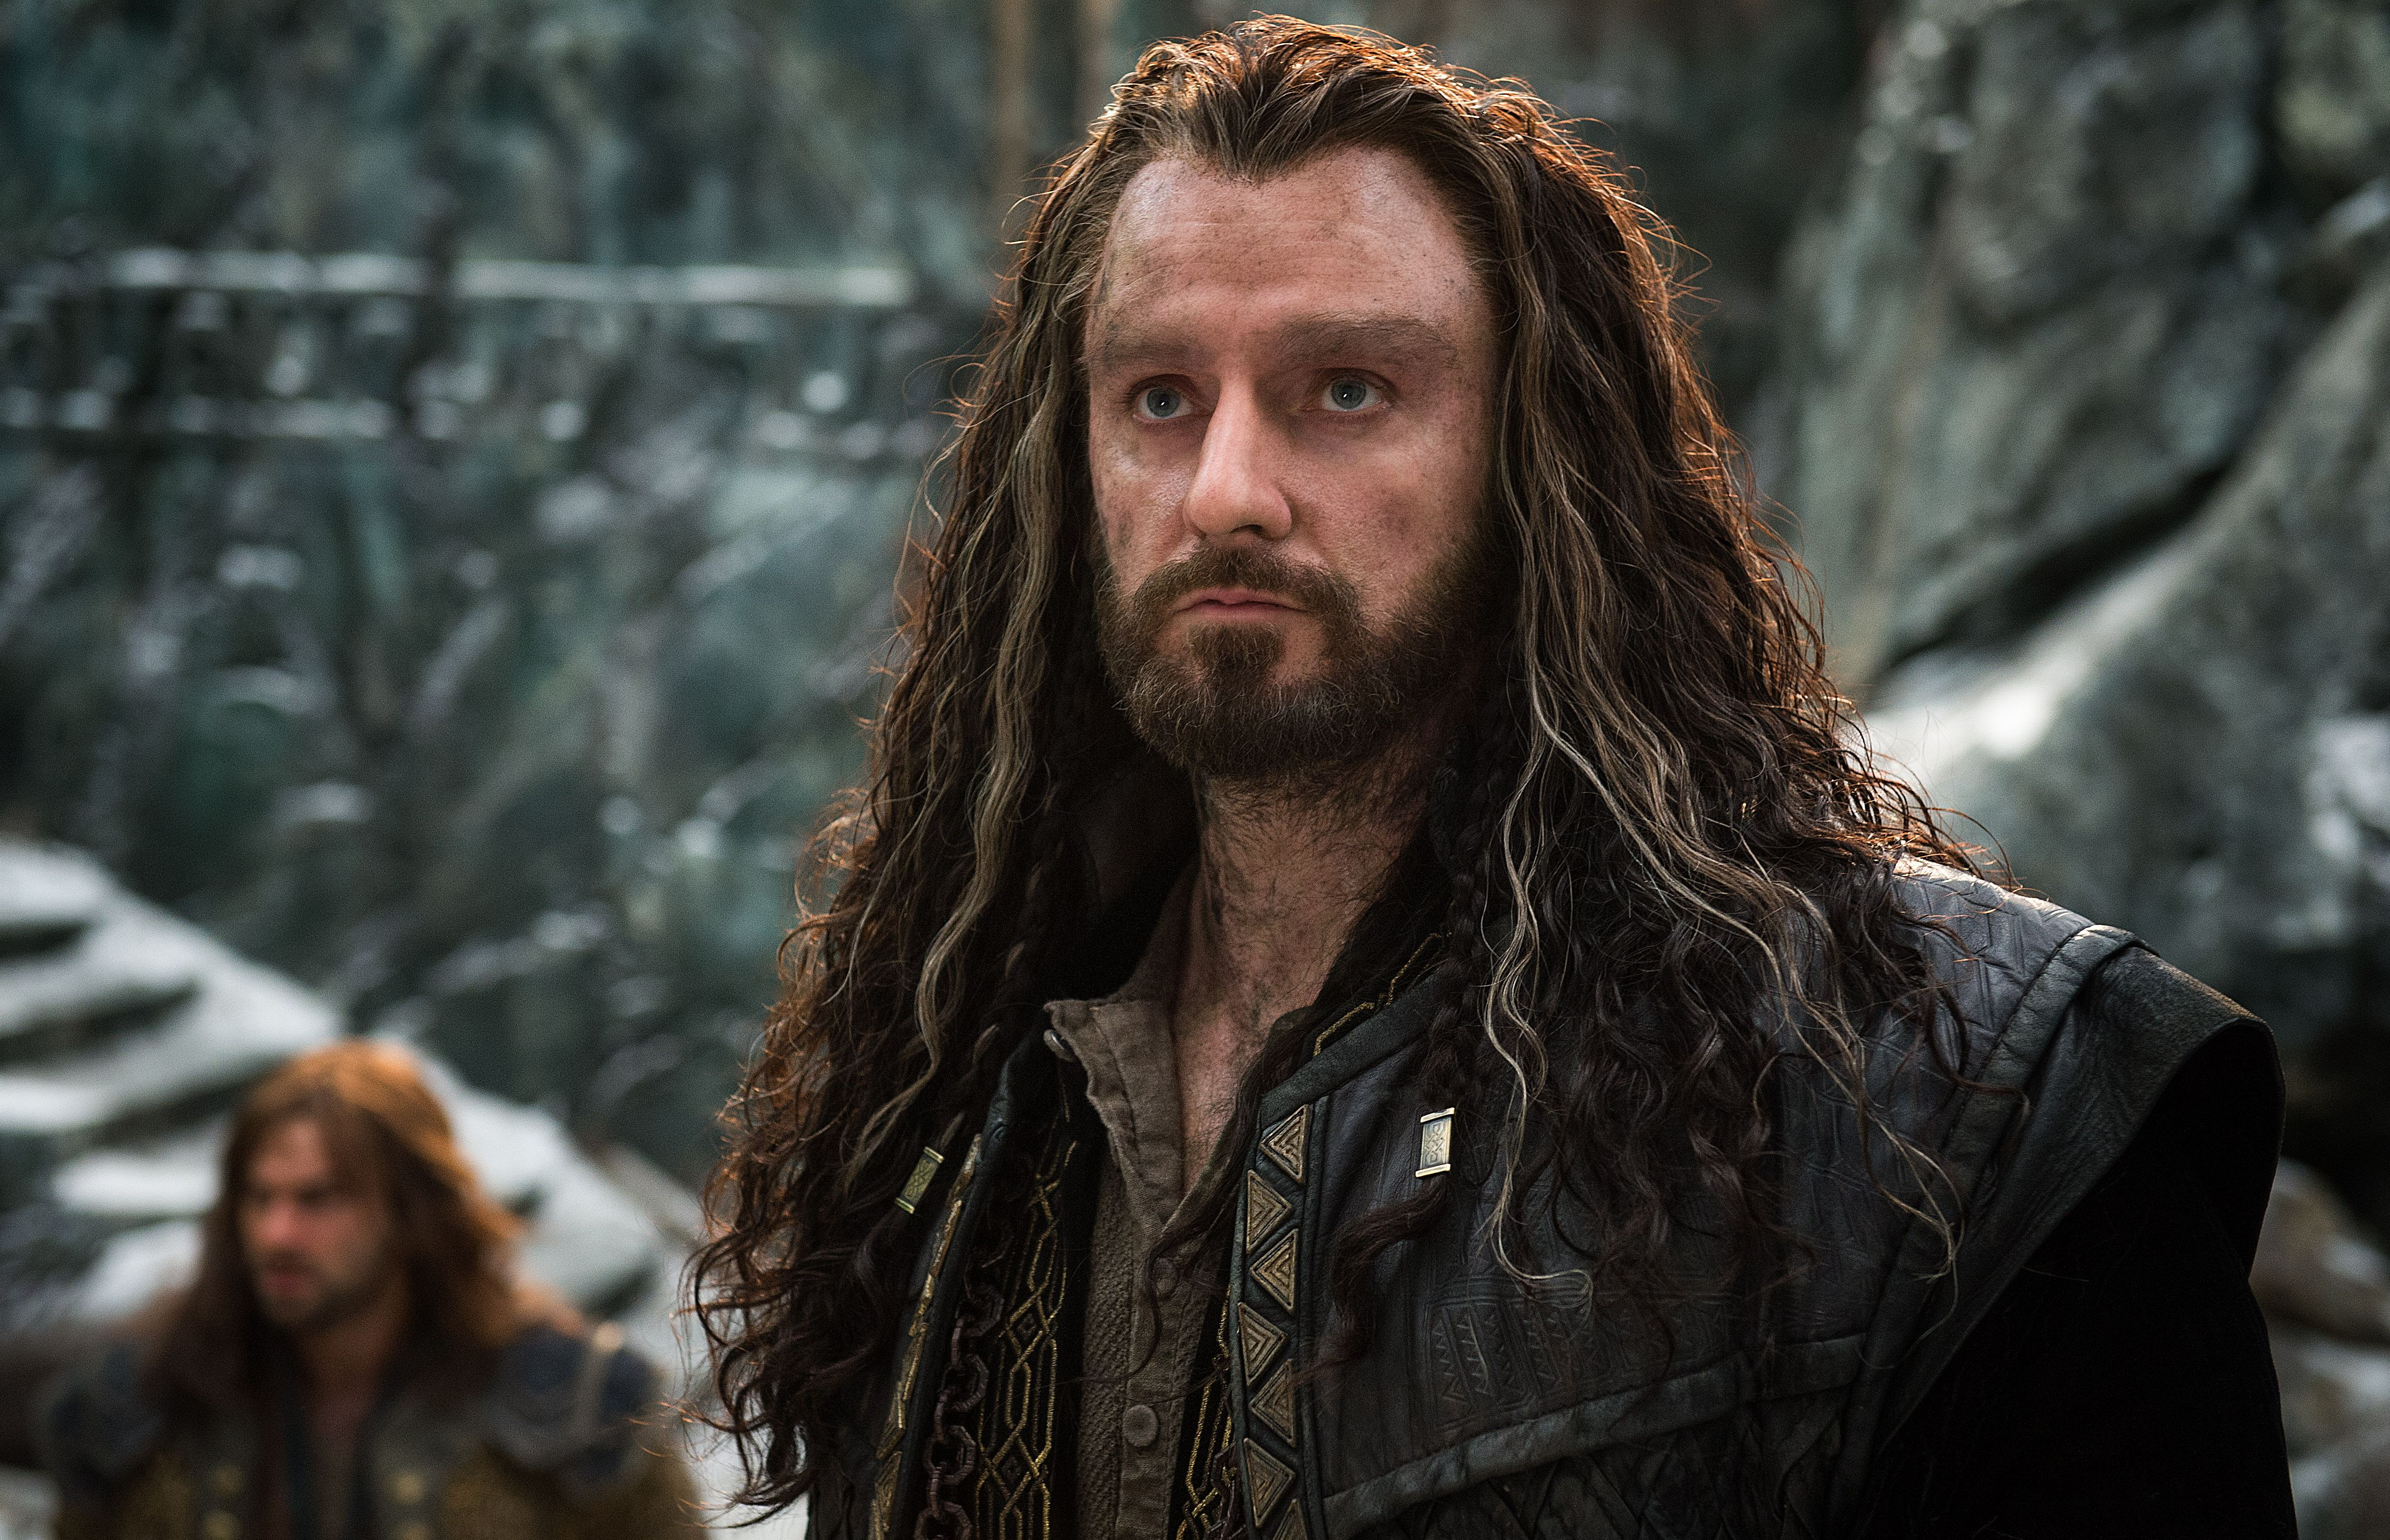 Richard Armitage as Thorin Oakenshield - The Battle of the F